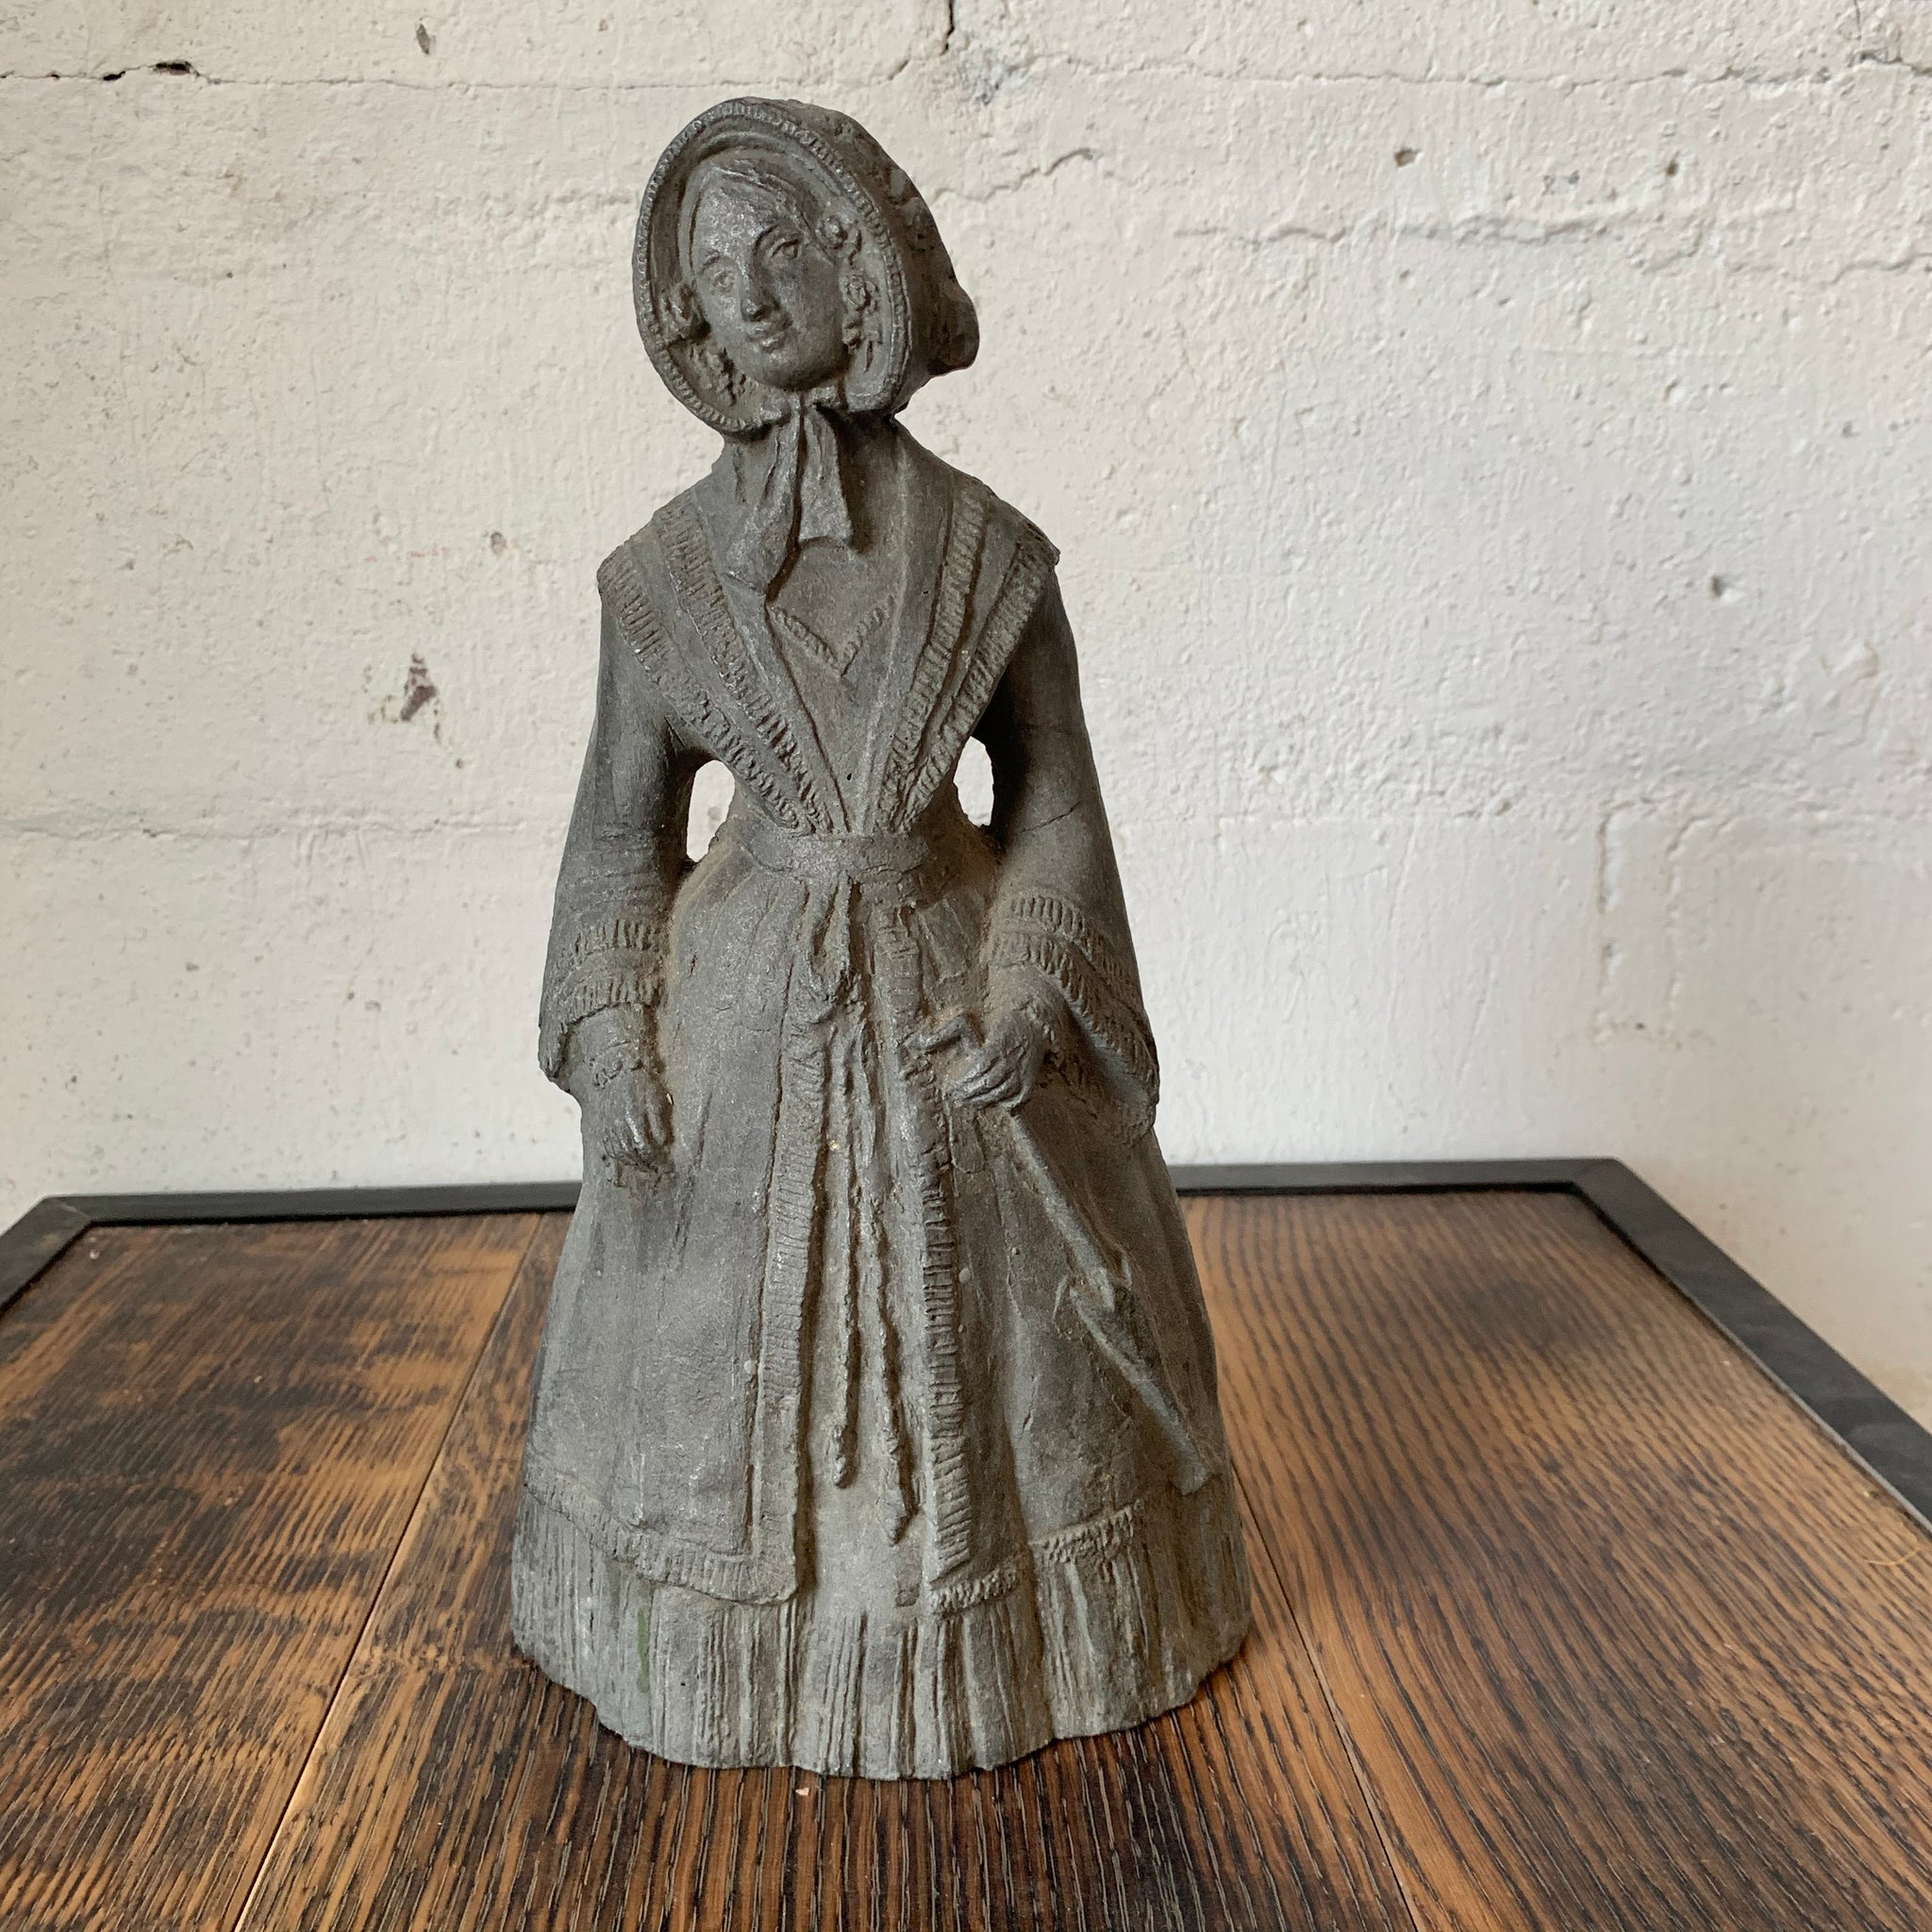 Antique iron doorstop in the shape of a peasant woman